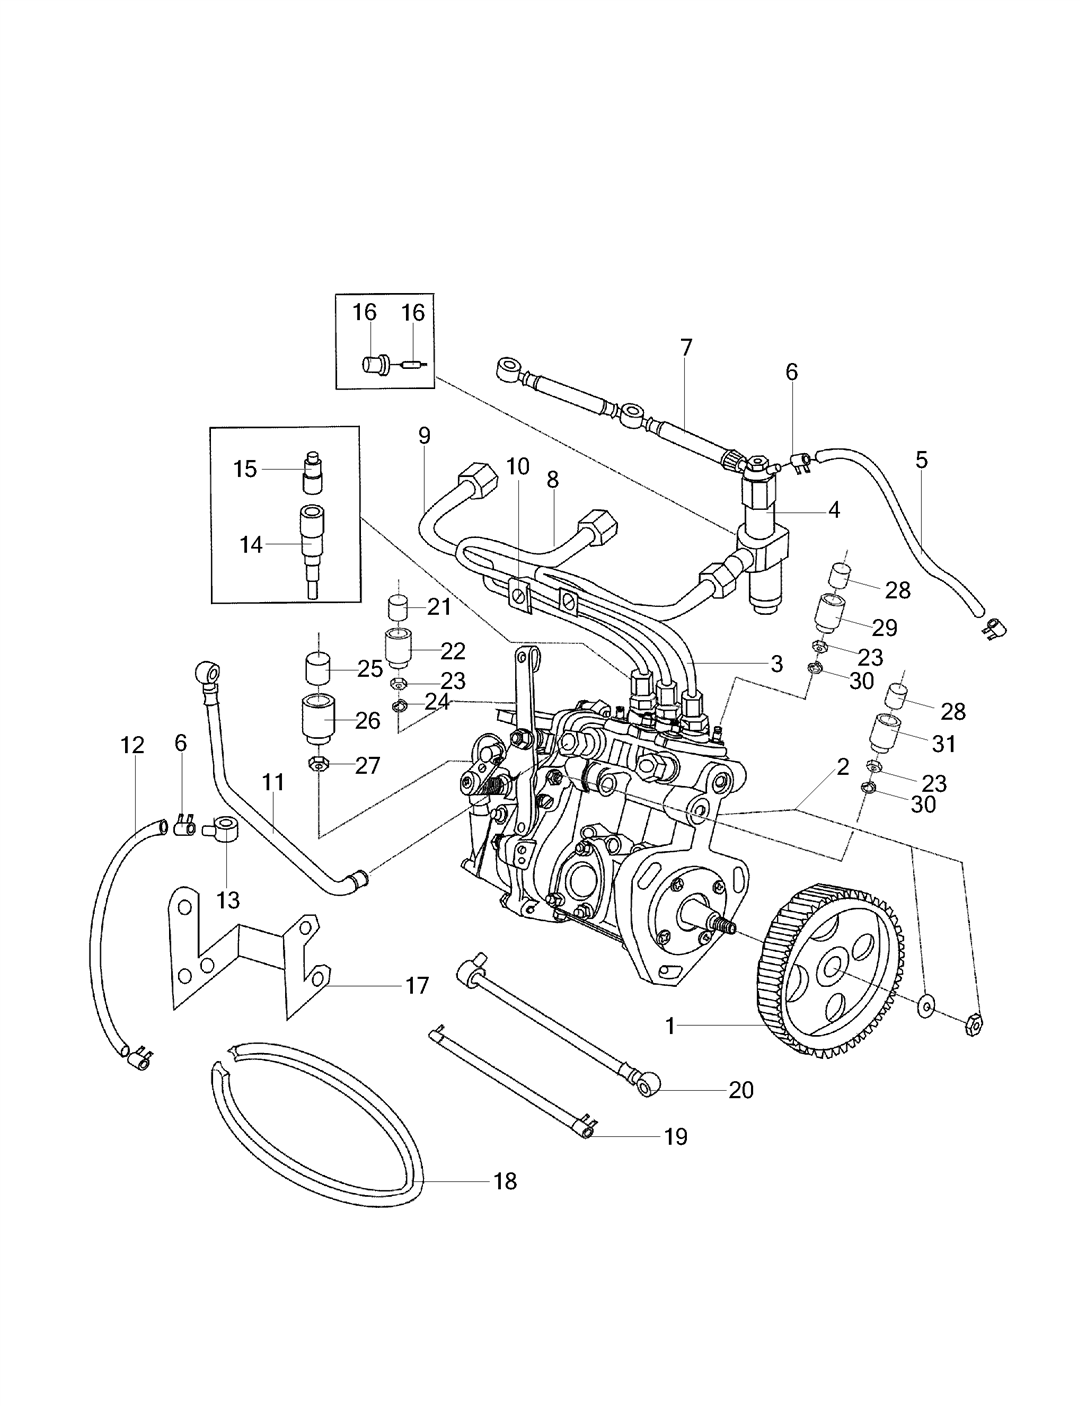 Fuel System Parts For Es 25 Mahindra Tractor